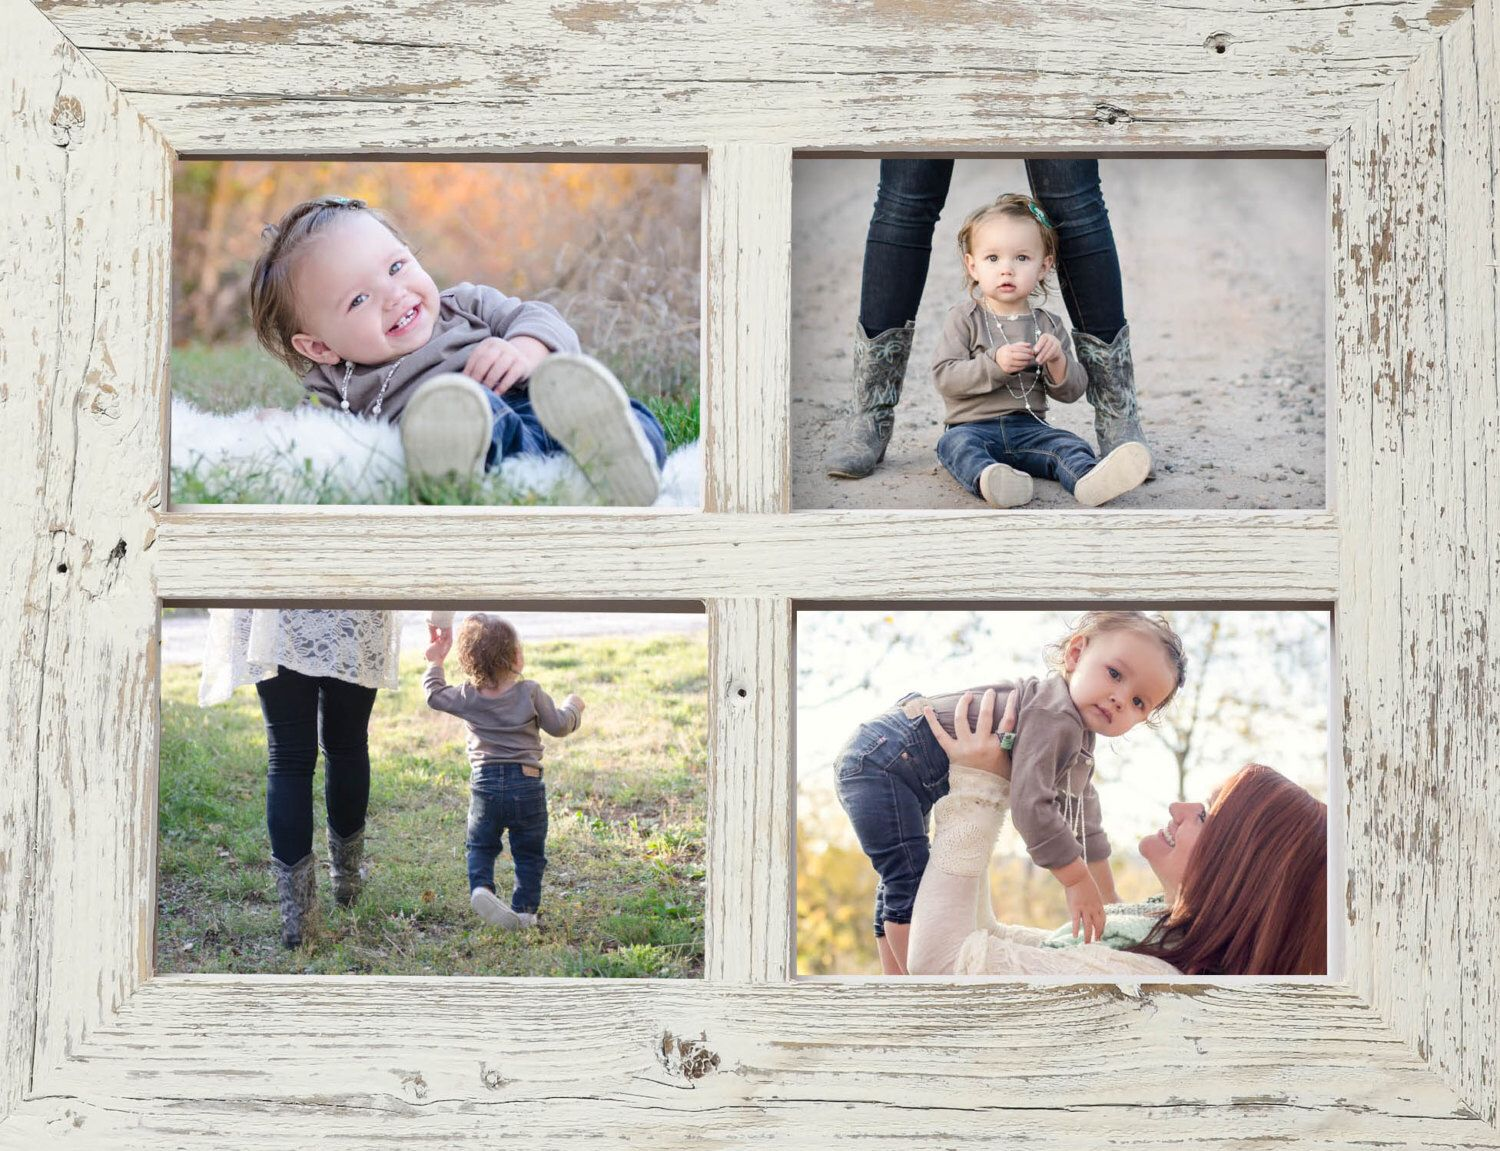 8x10 and 5x7 collage frame - 17 Best Images About Frames On Pinterest Picture Frame Collages Collage And Handmade Frames